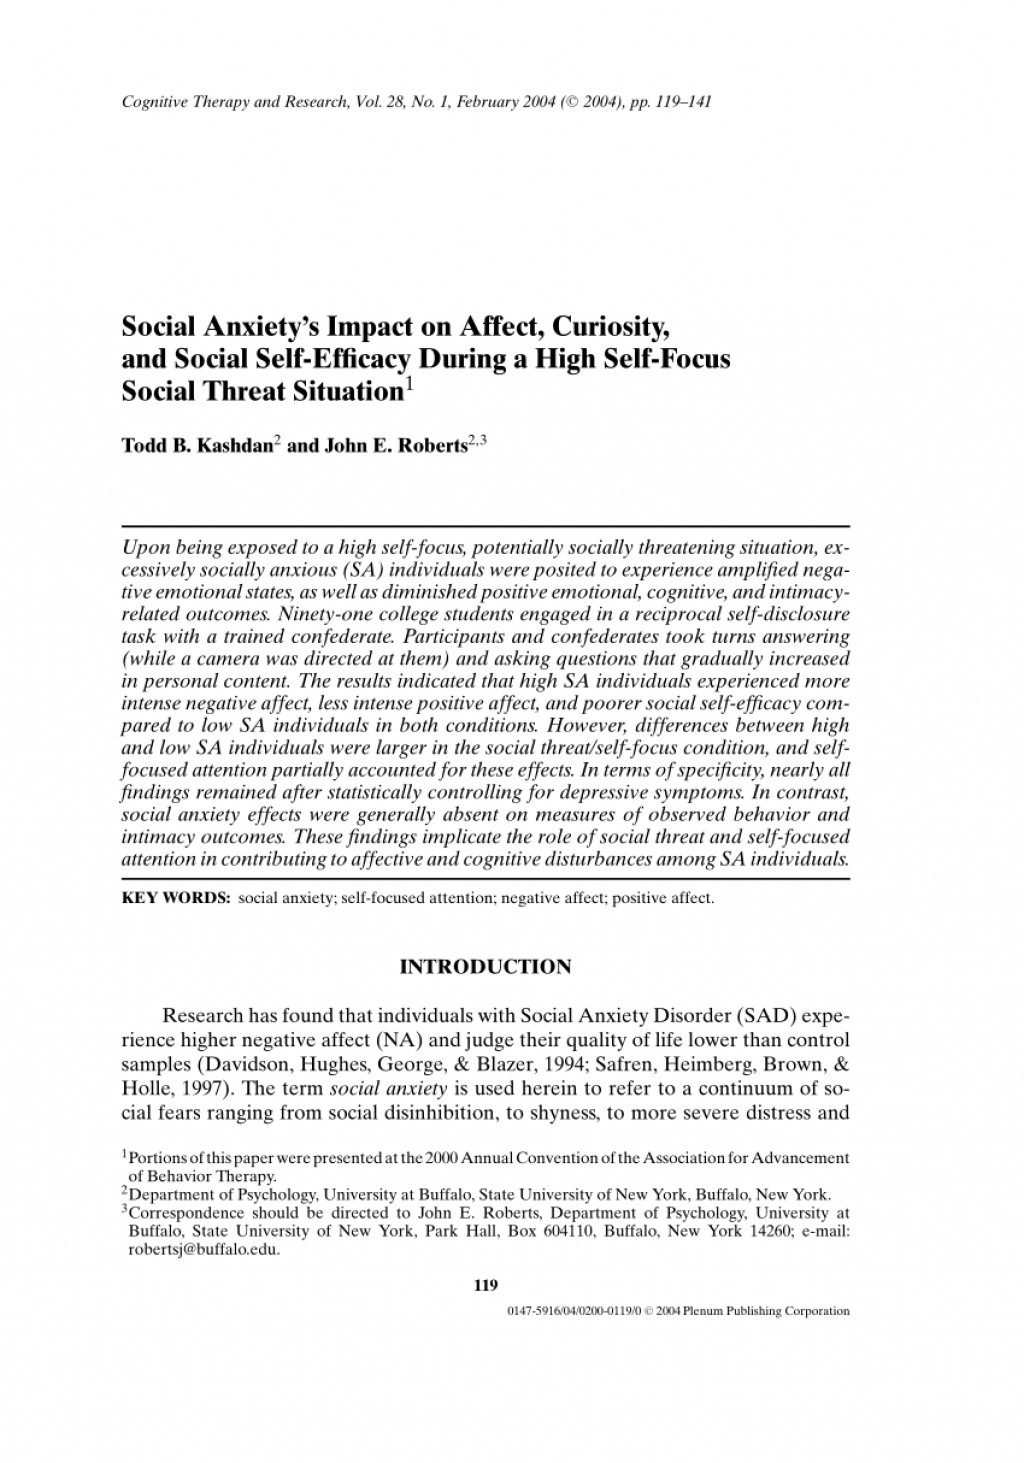 005 Research Paper Psychology On Social Anxiety Disorder Staggering Large